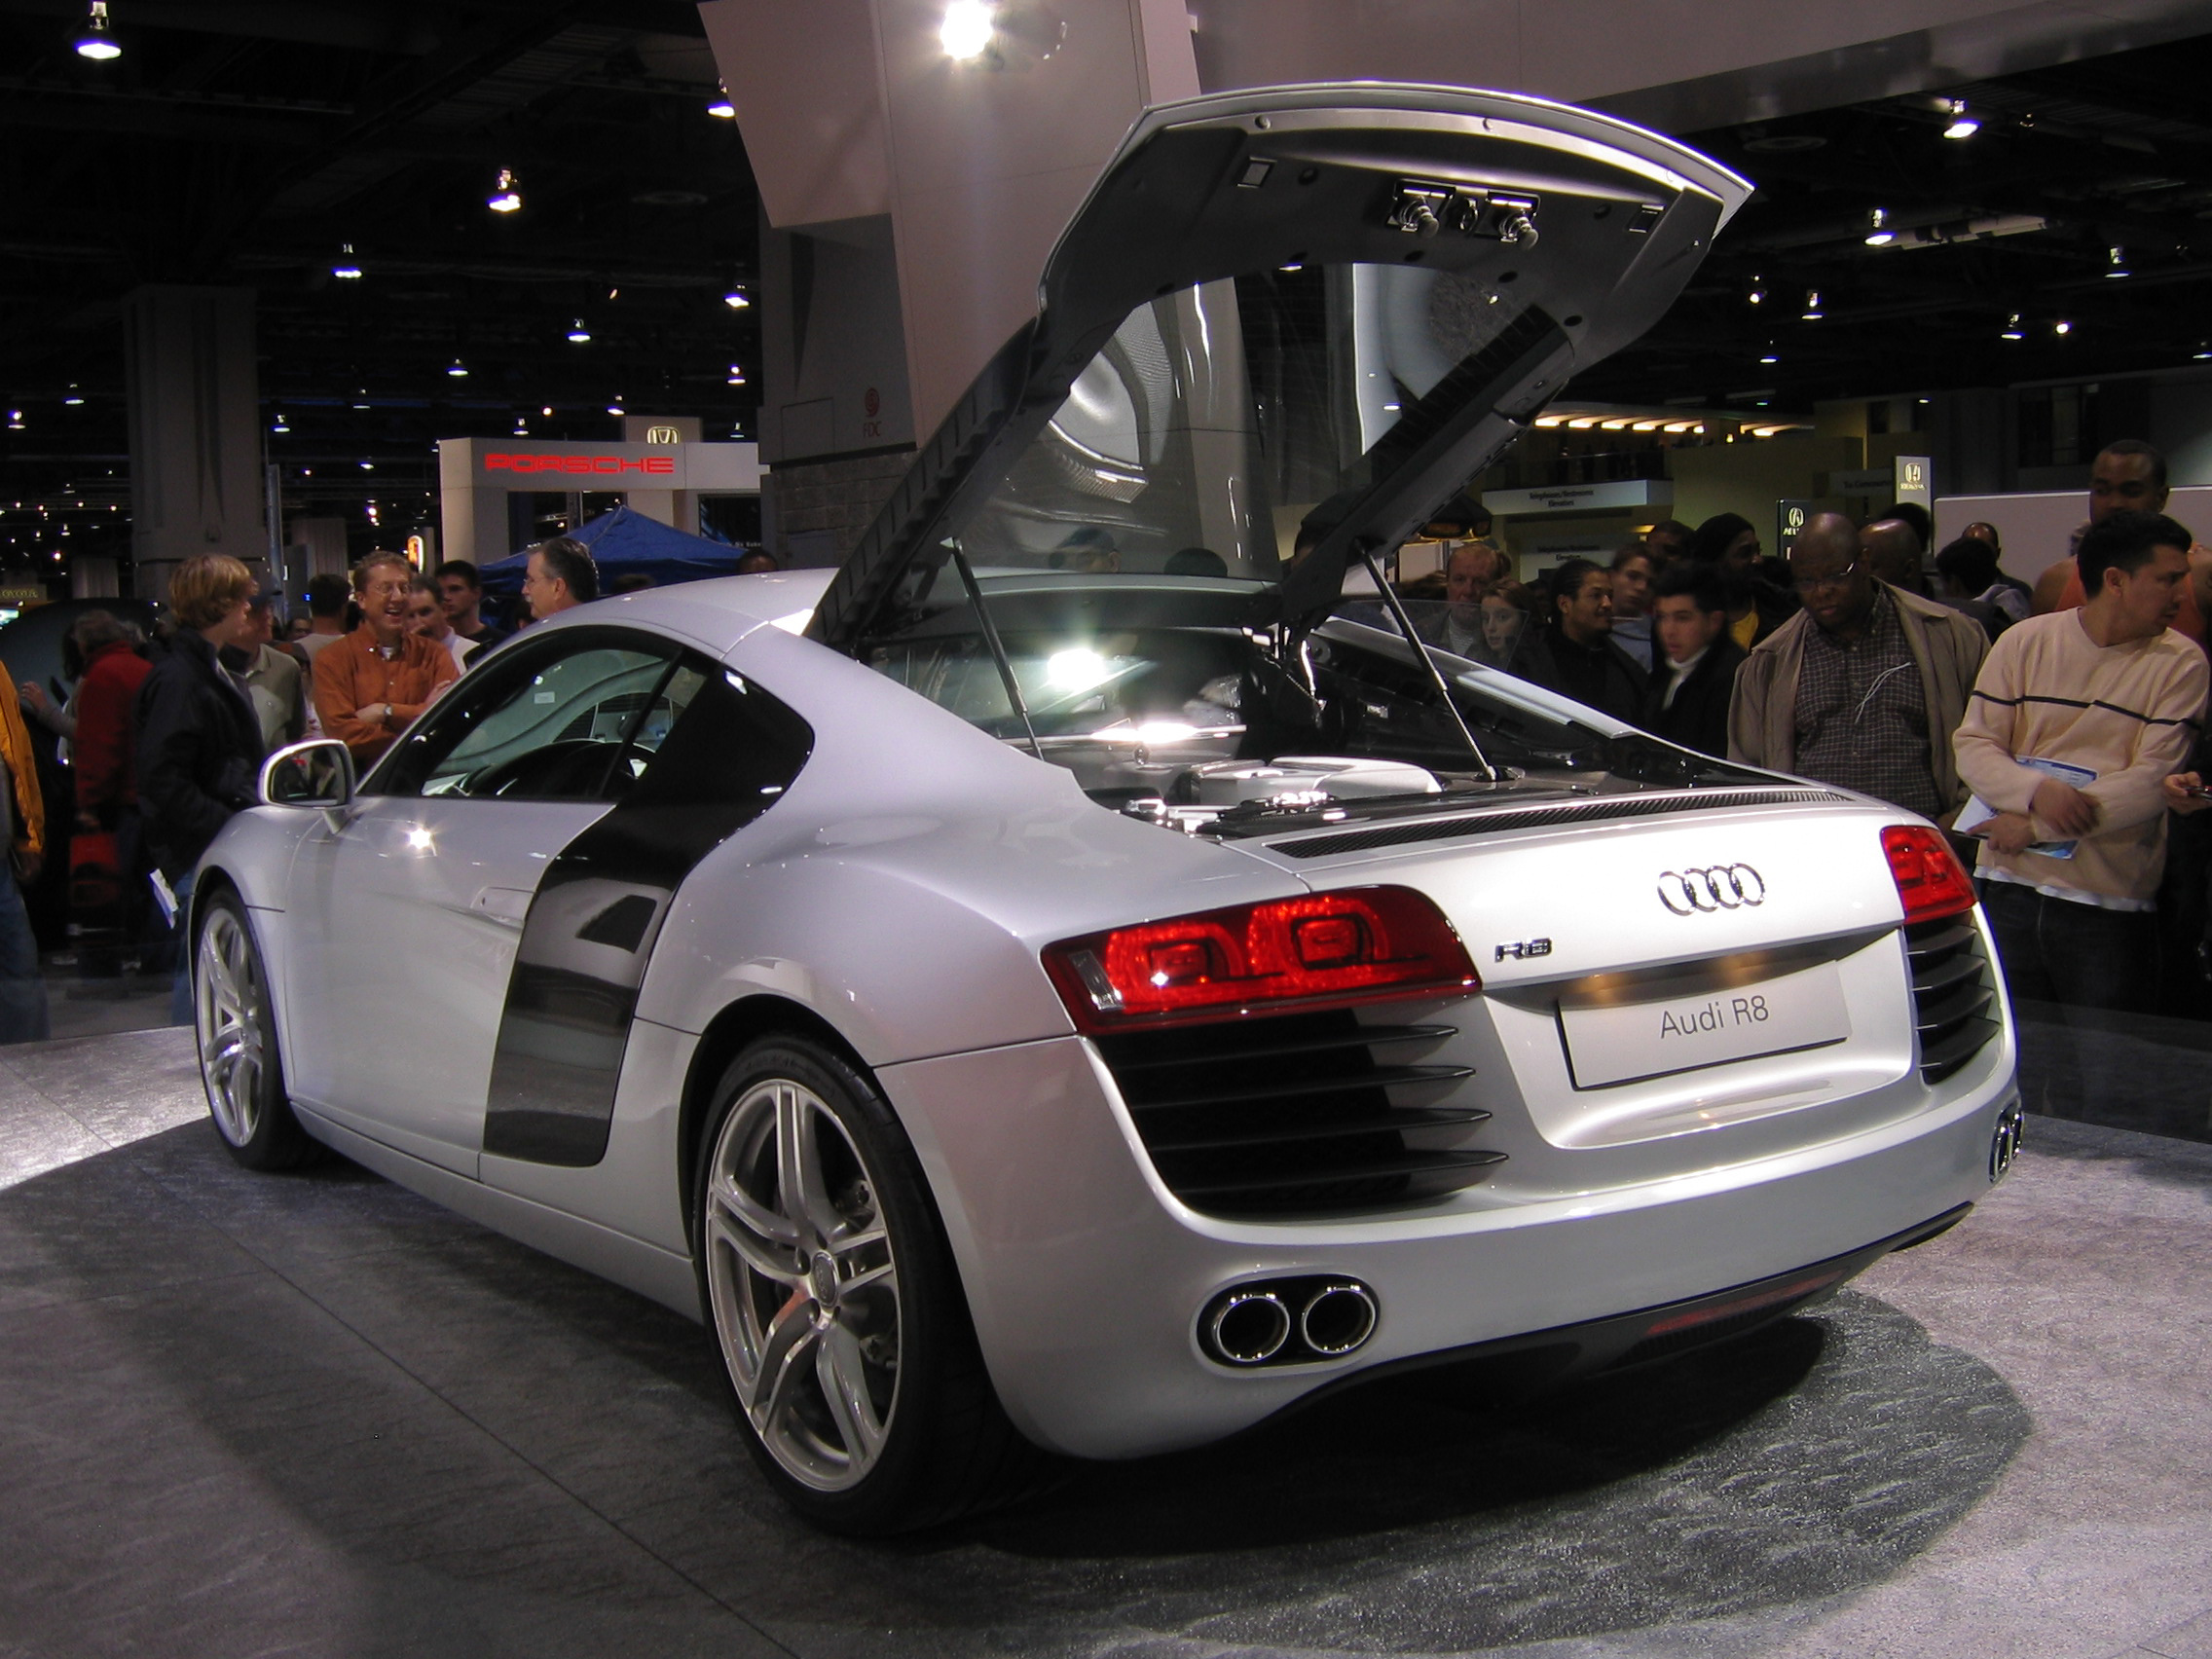 FileAudi r82007washautojpg  Wikimedia Commons